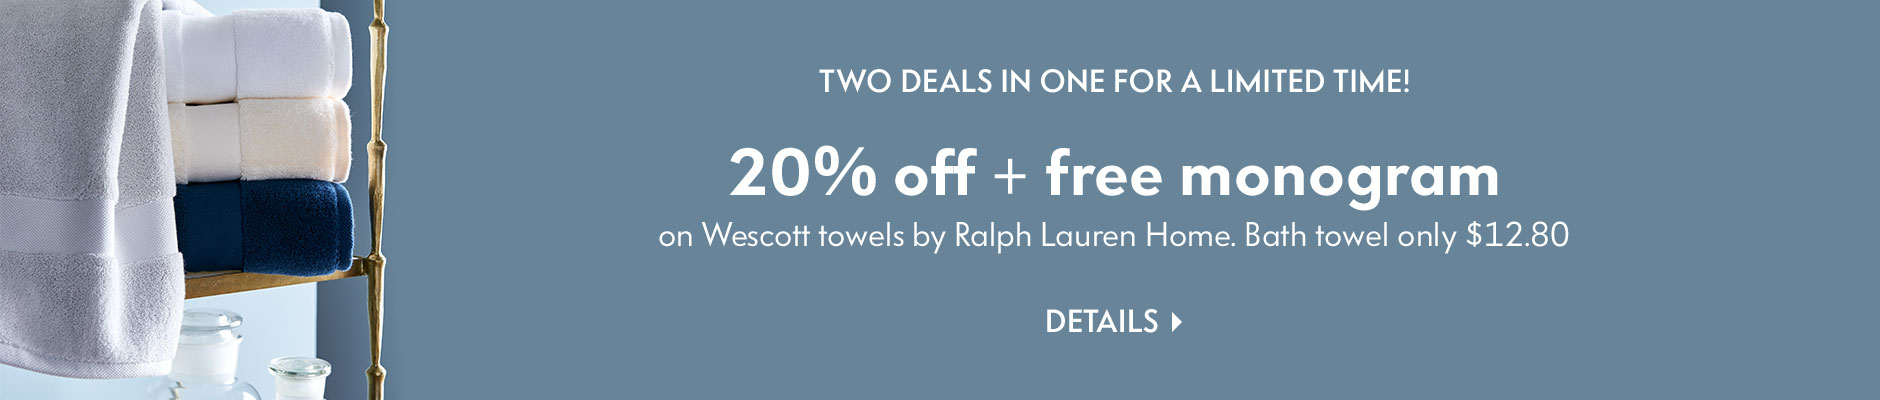 Two deals in one for a limited time! 20% off + free monogram on Wescott towels by Ralph Lauren Home - Bath towel only $12.80